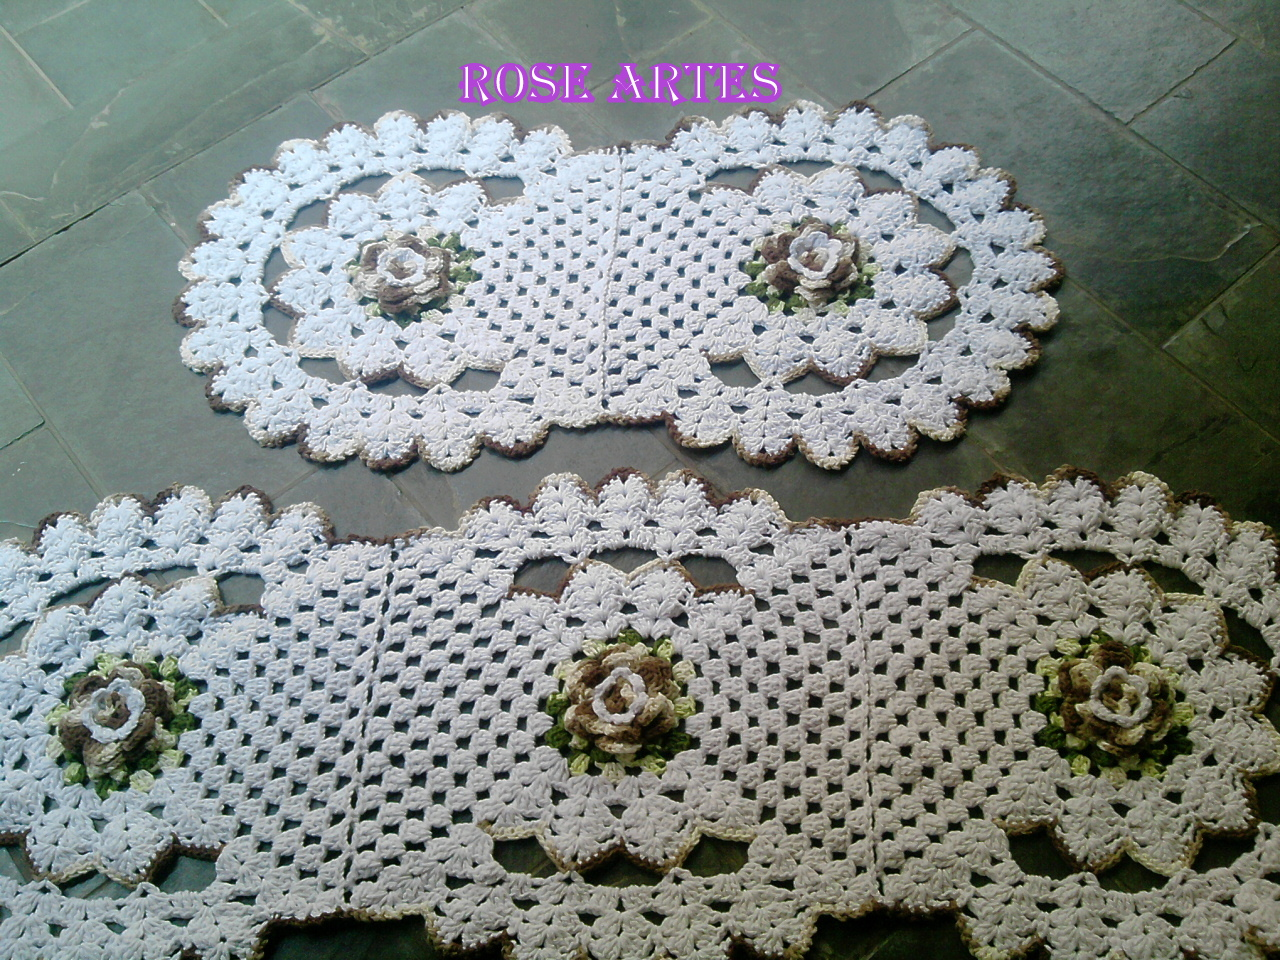 Arte Facil Tapete De Croche : Rose artes: Tapetes de Croche